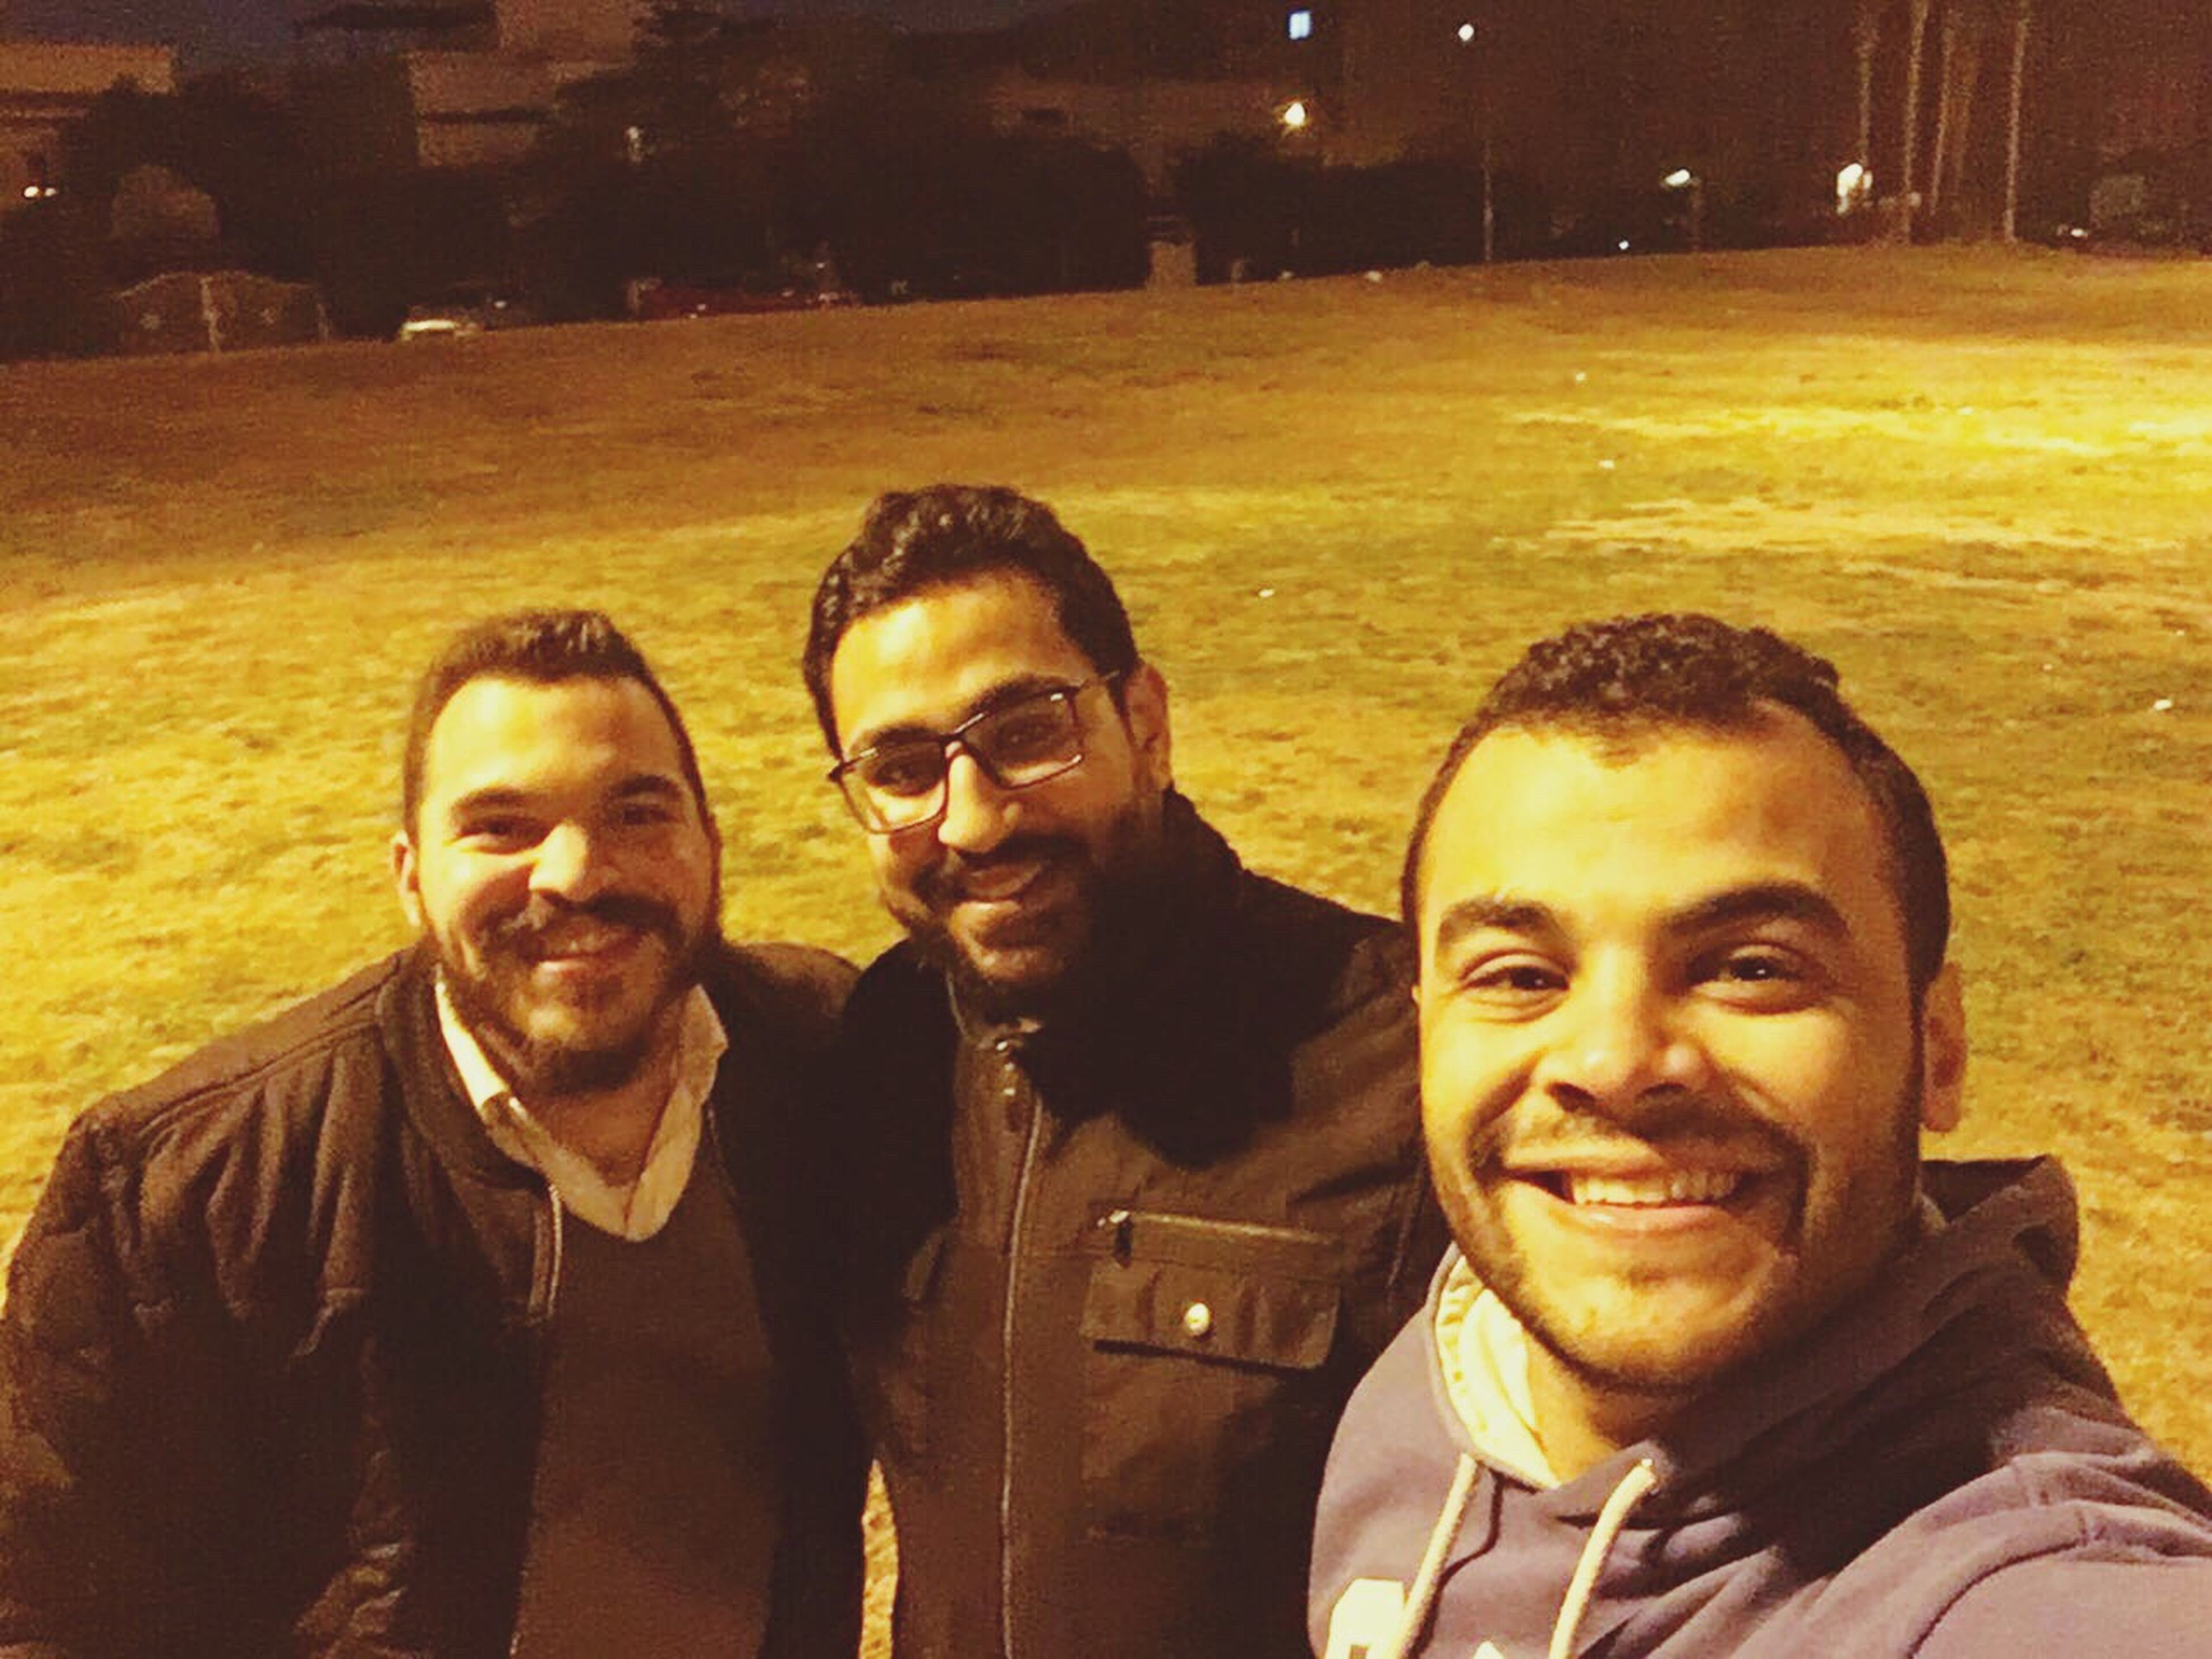 friendship, smiling, lifestyles, portrait, looking at camera, fun, selfie, happiness, men, city, outdoors, togetherness, young adult, people, adult, young women, cheerful, adults only, only men, day, human body part